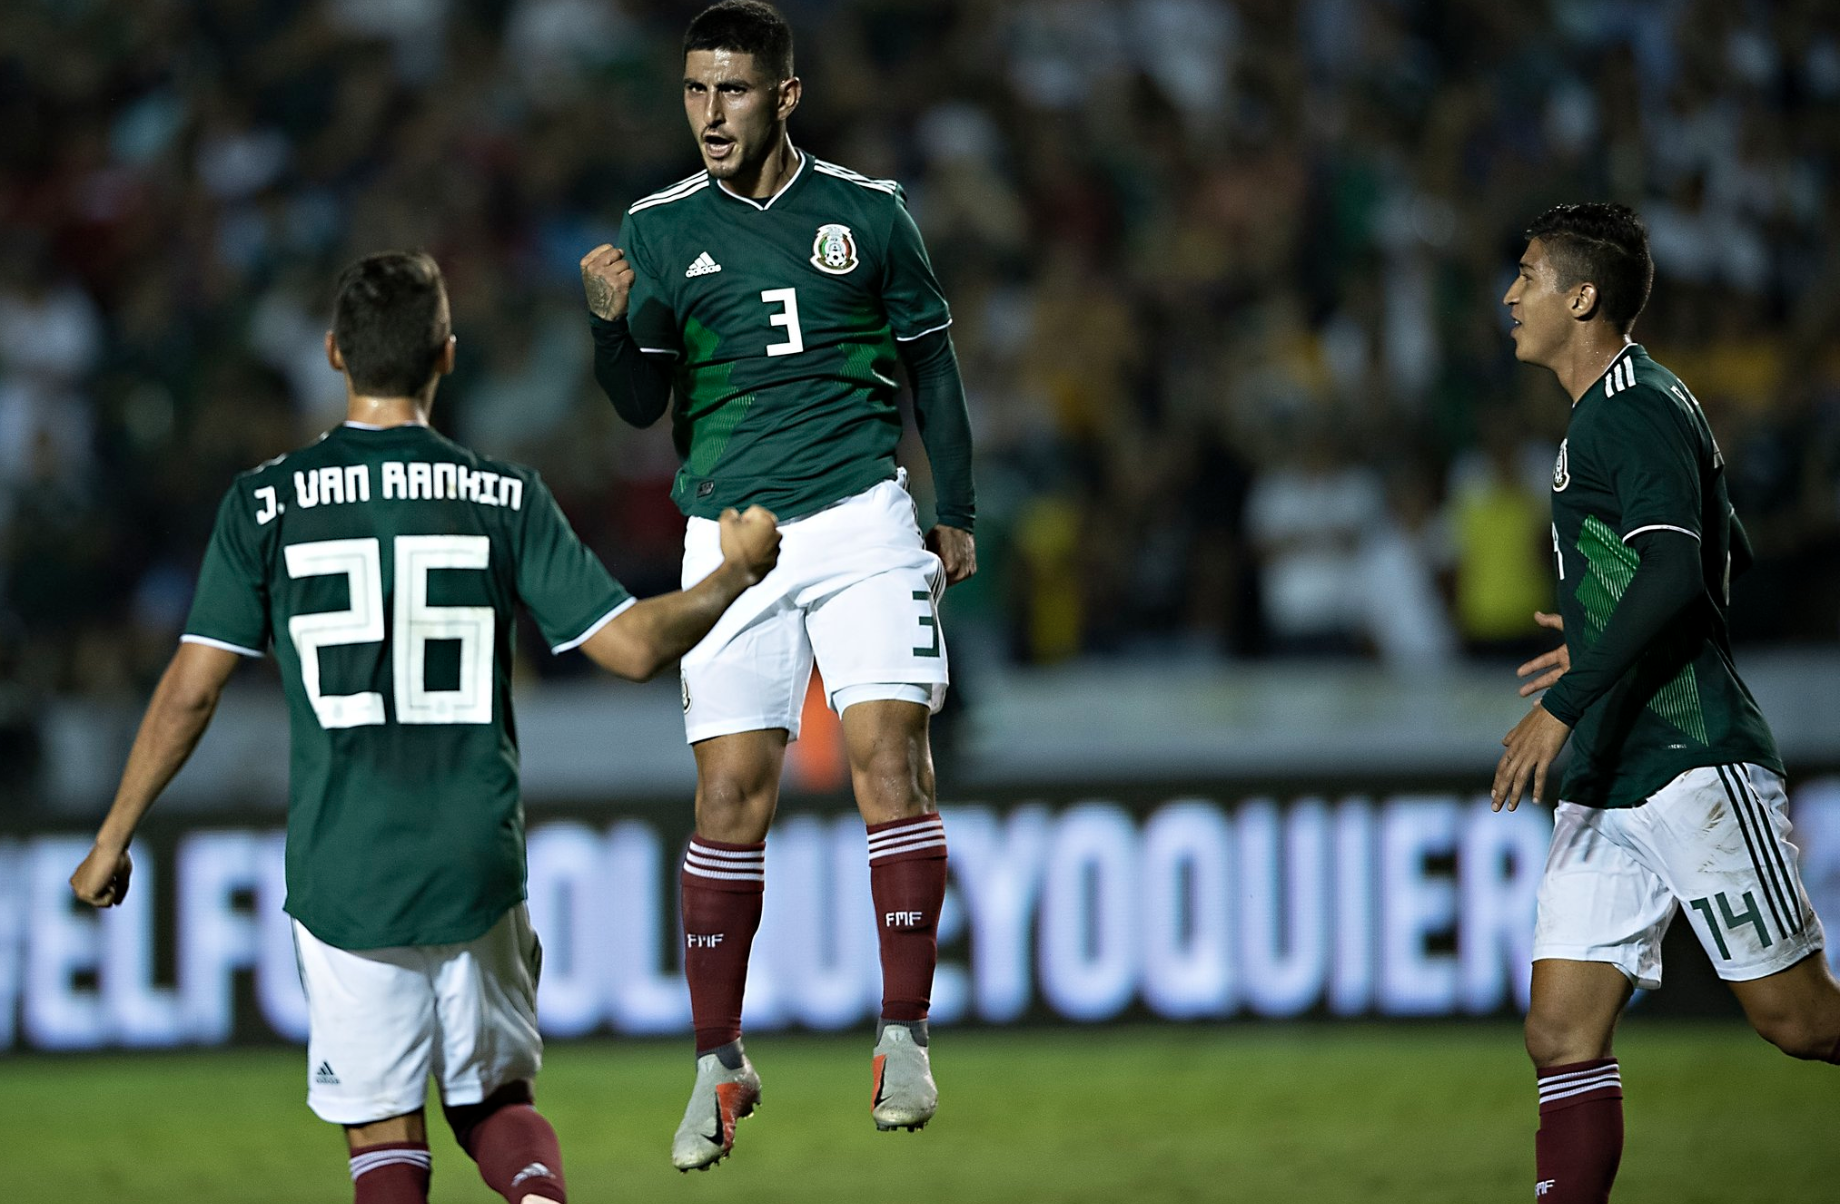 Mexico comes back to top Costa Rica 3-2 in home friendly